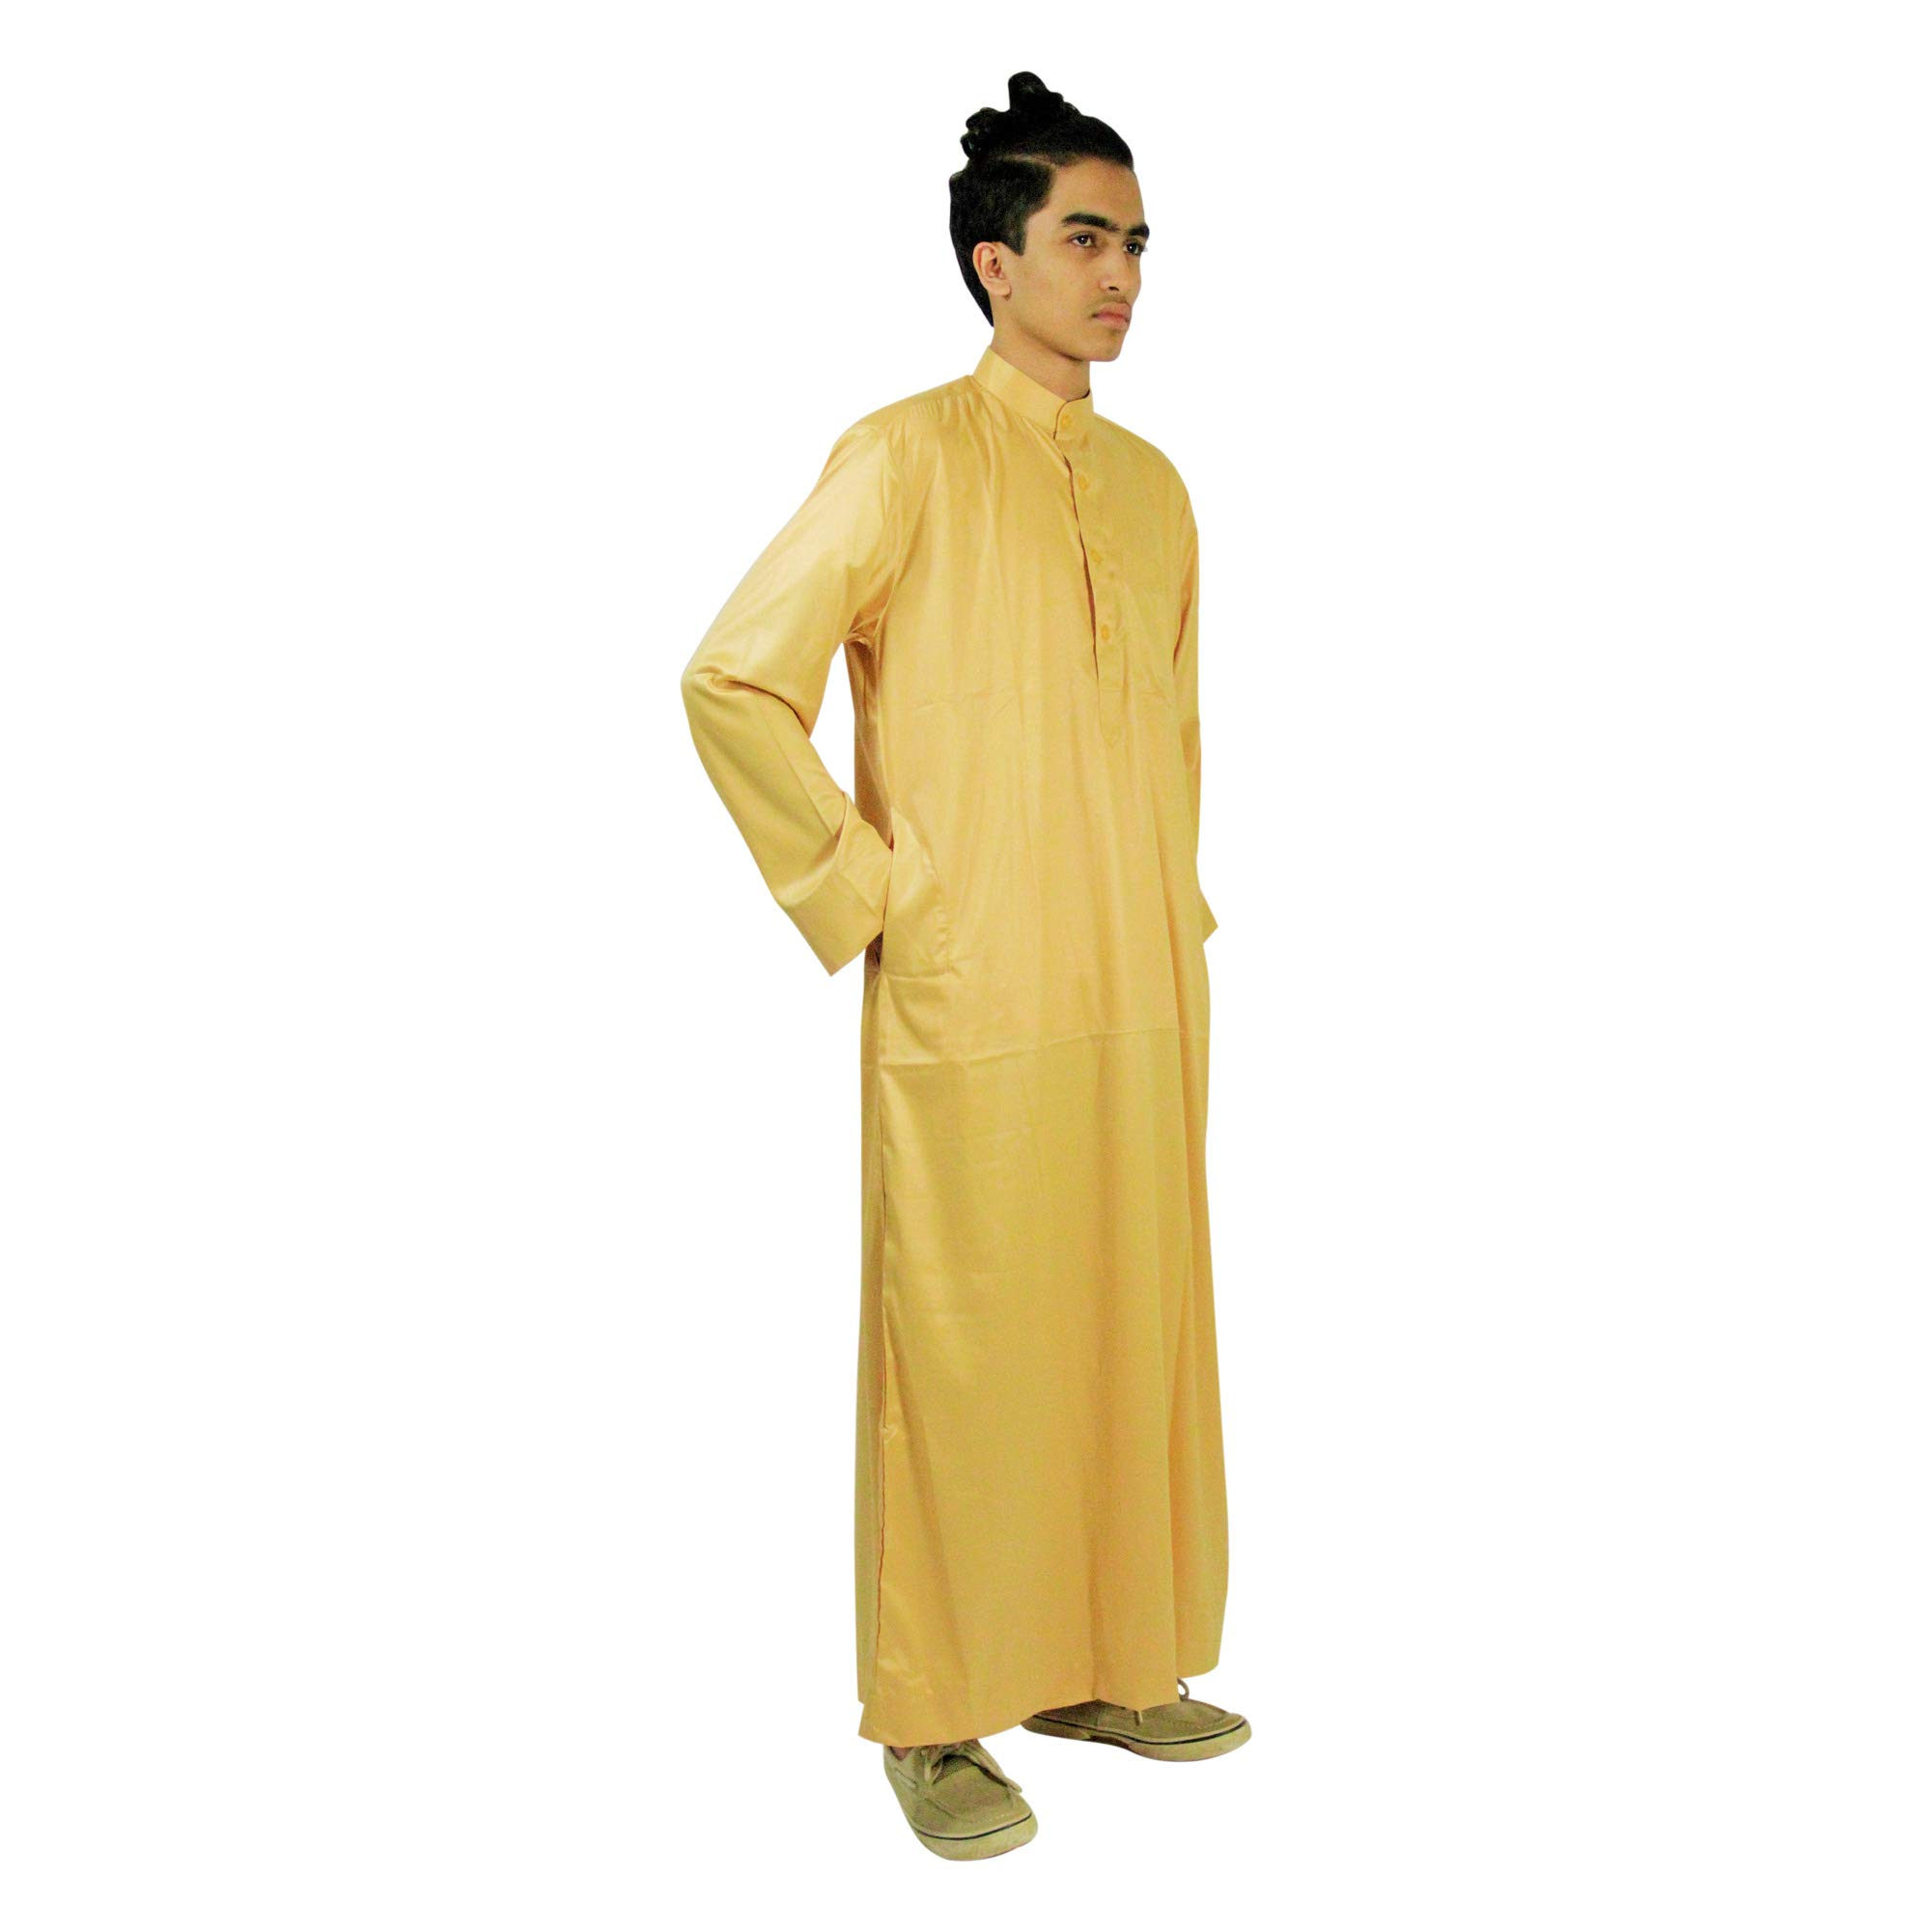 Hijaz Long Sleeve Fitted Men's Formal Golden Thobe Polished Cotton Arab Robe - L